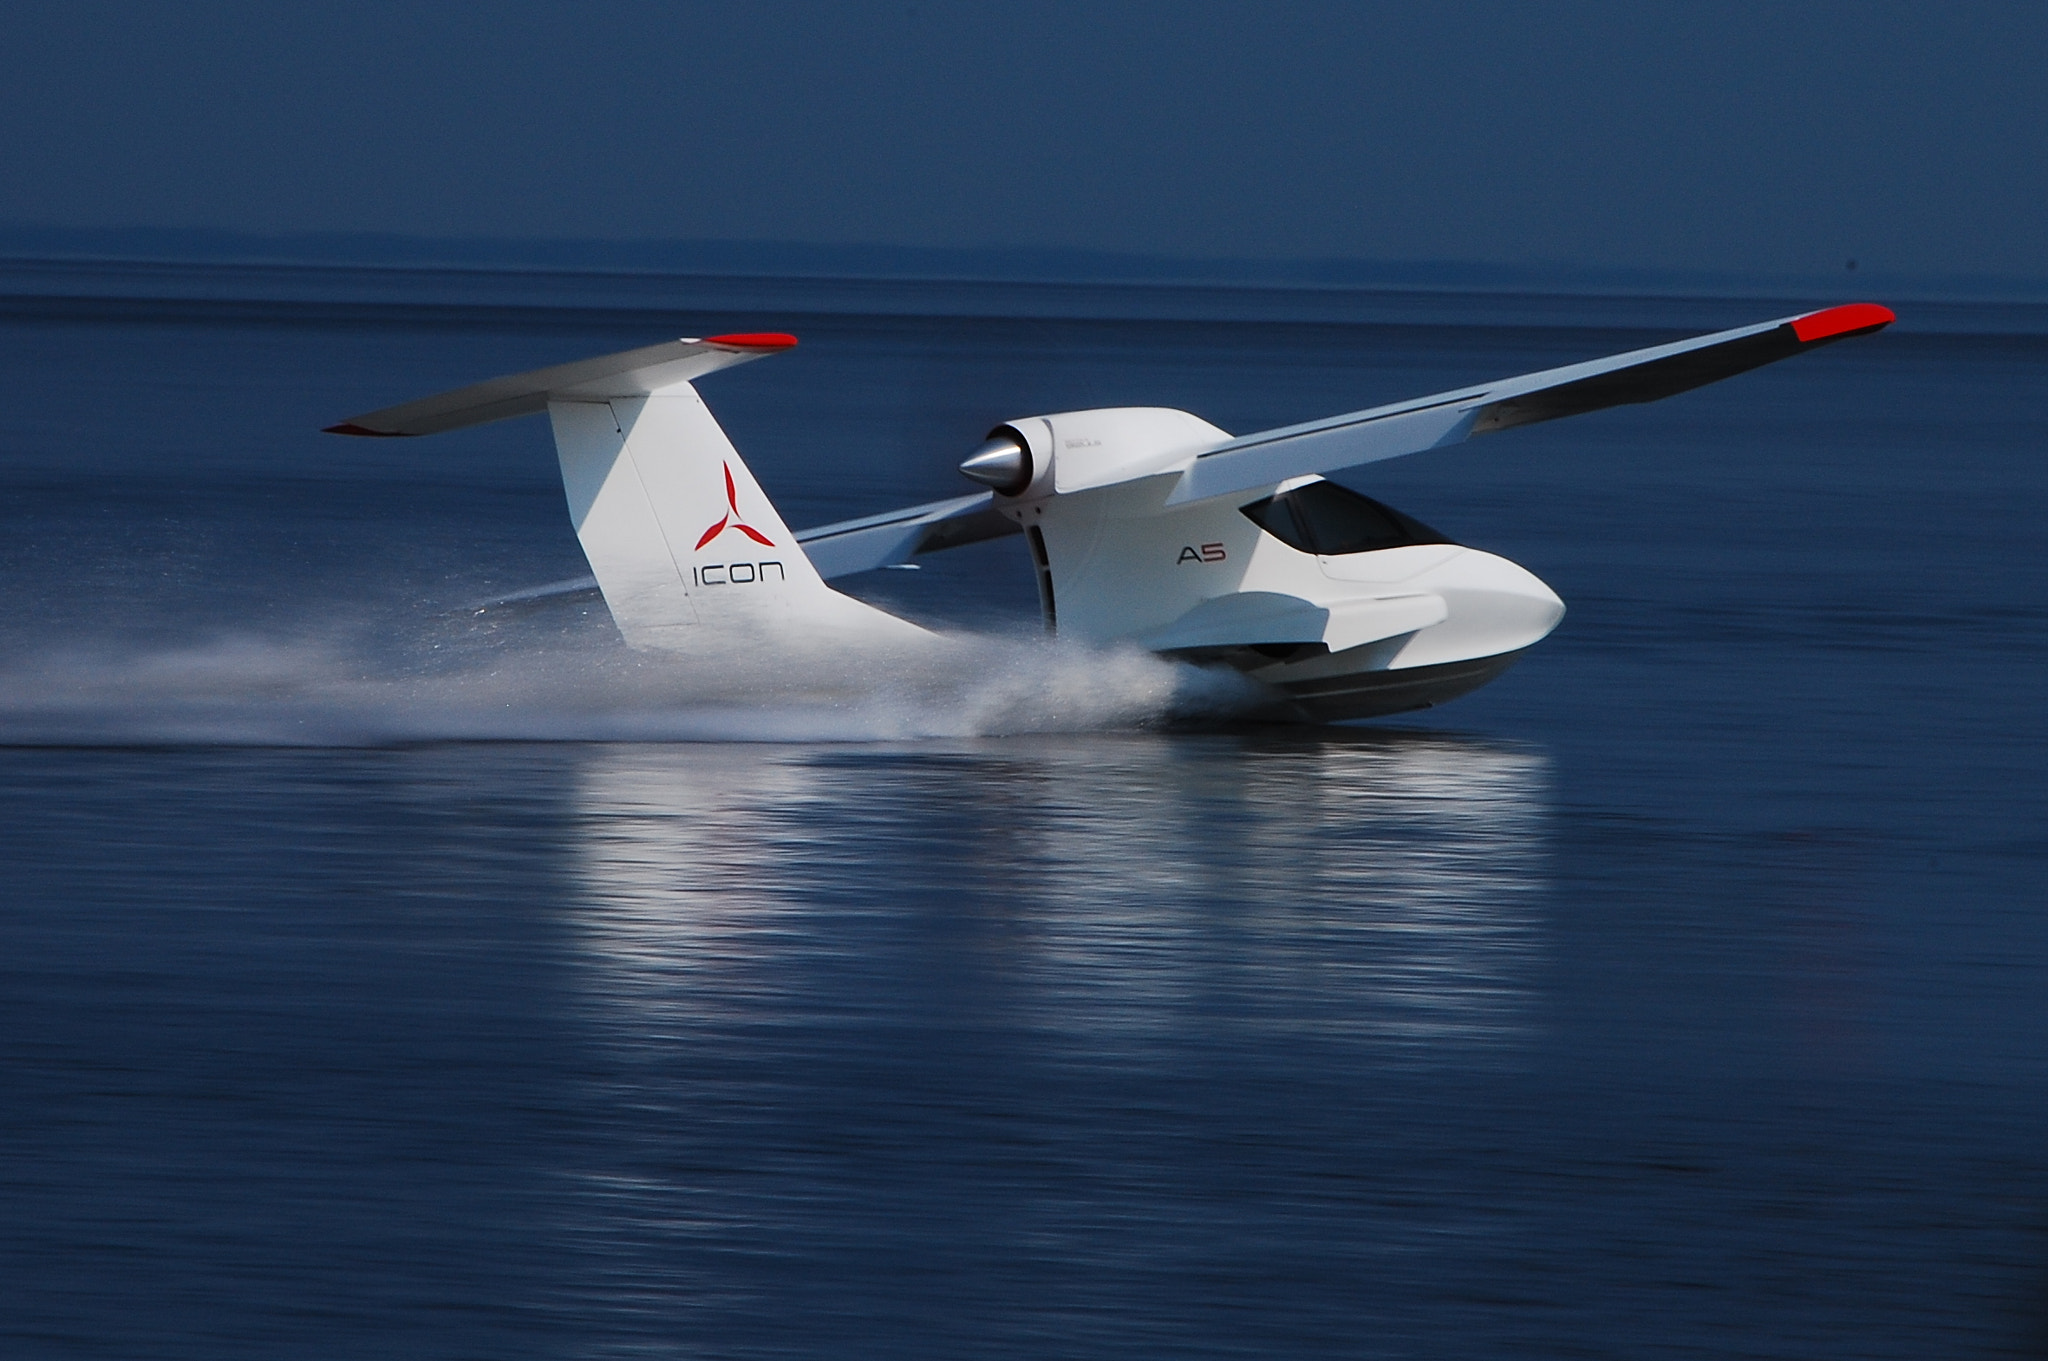 Photograph Icon A5 by Brian D. Wendt on 500px